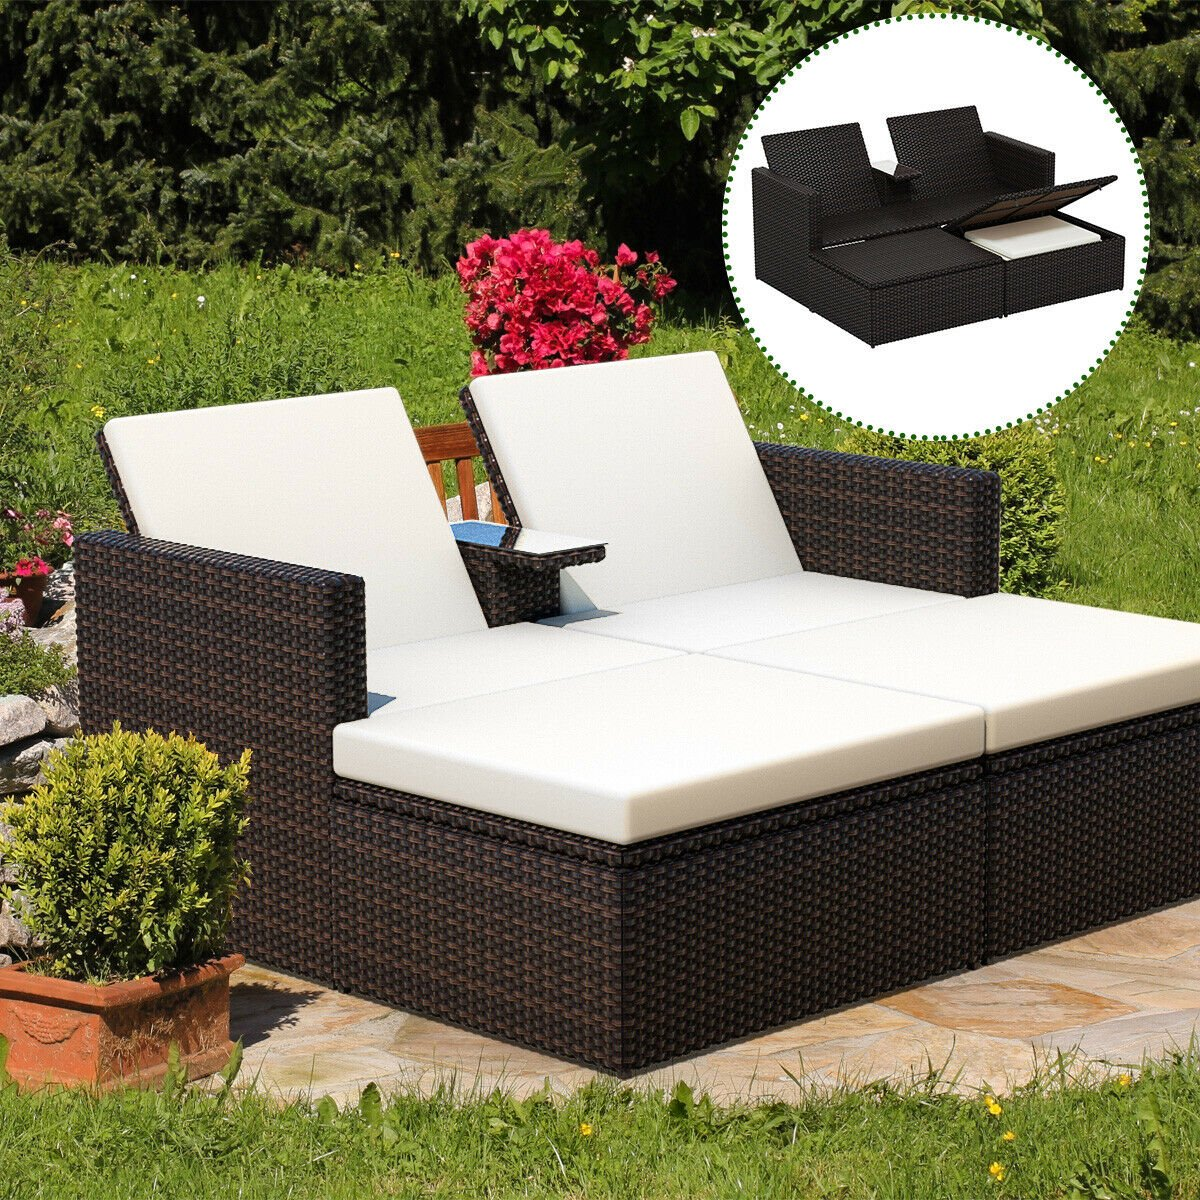 3 Piece Chaise Lounge Chair Set